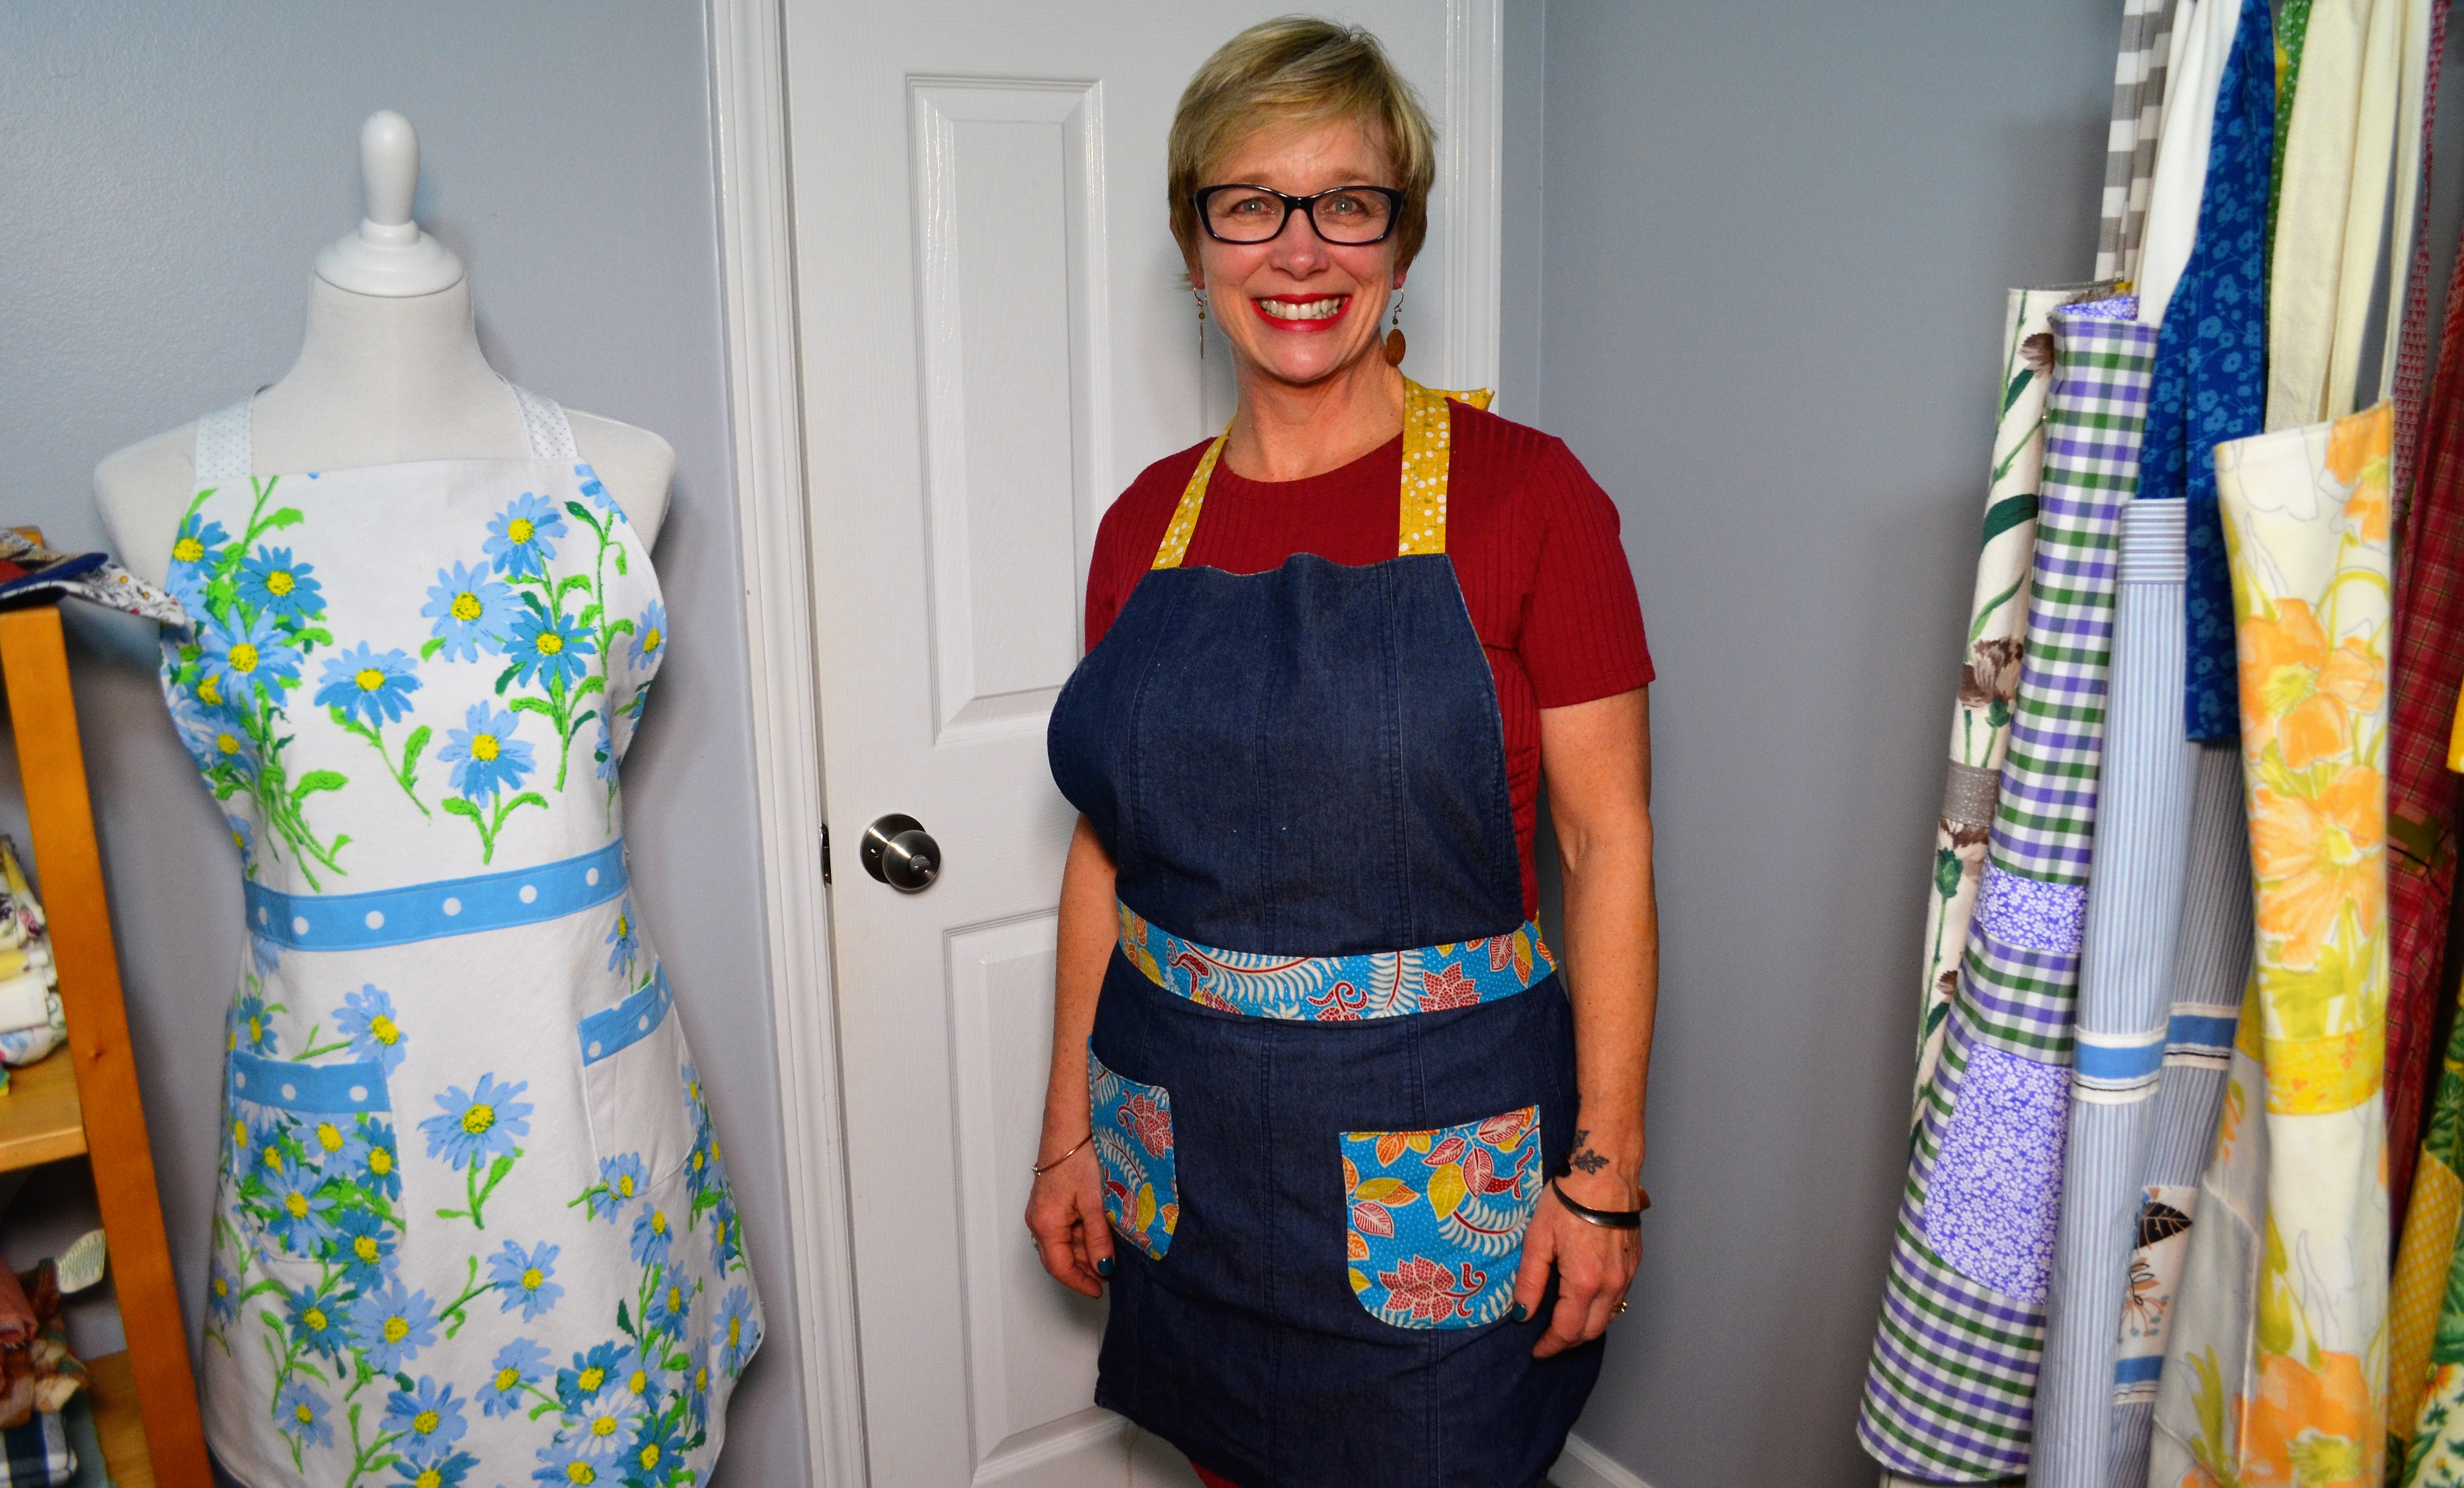 Alabama Maker thimbletreestudio stitches a mother-daughter connection